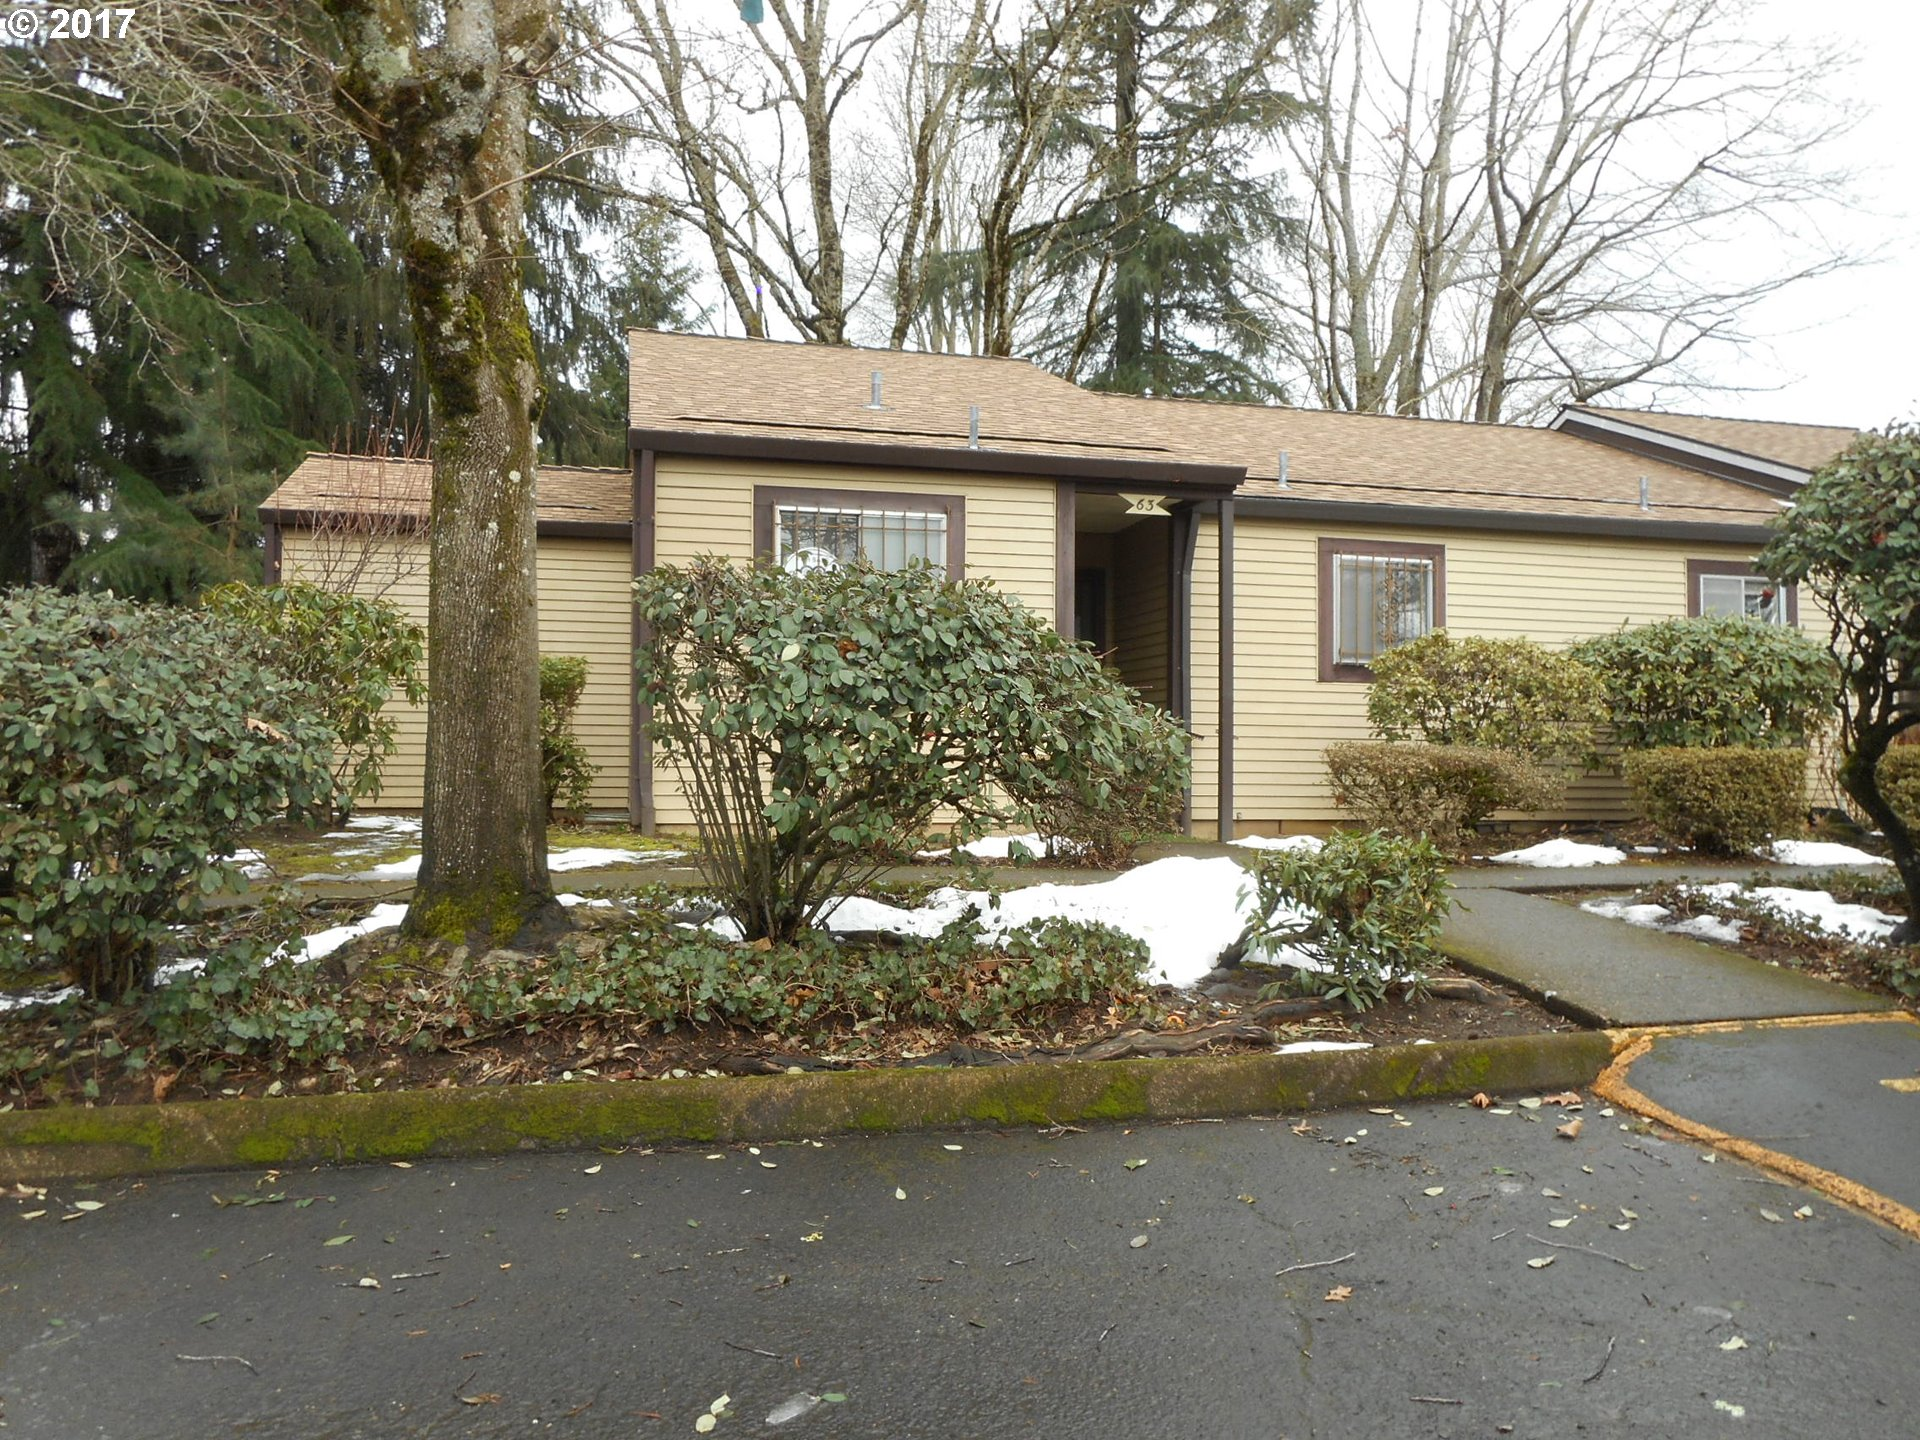 954 sq. ft 2 bedrooms 2 bathrooms  House , Portland, OR